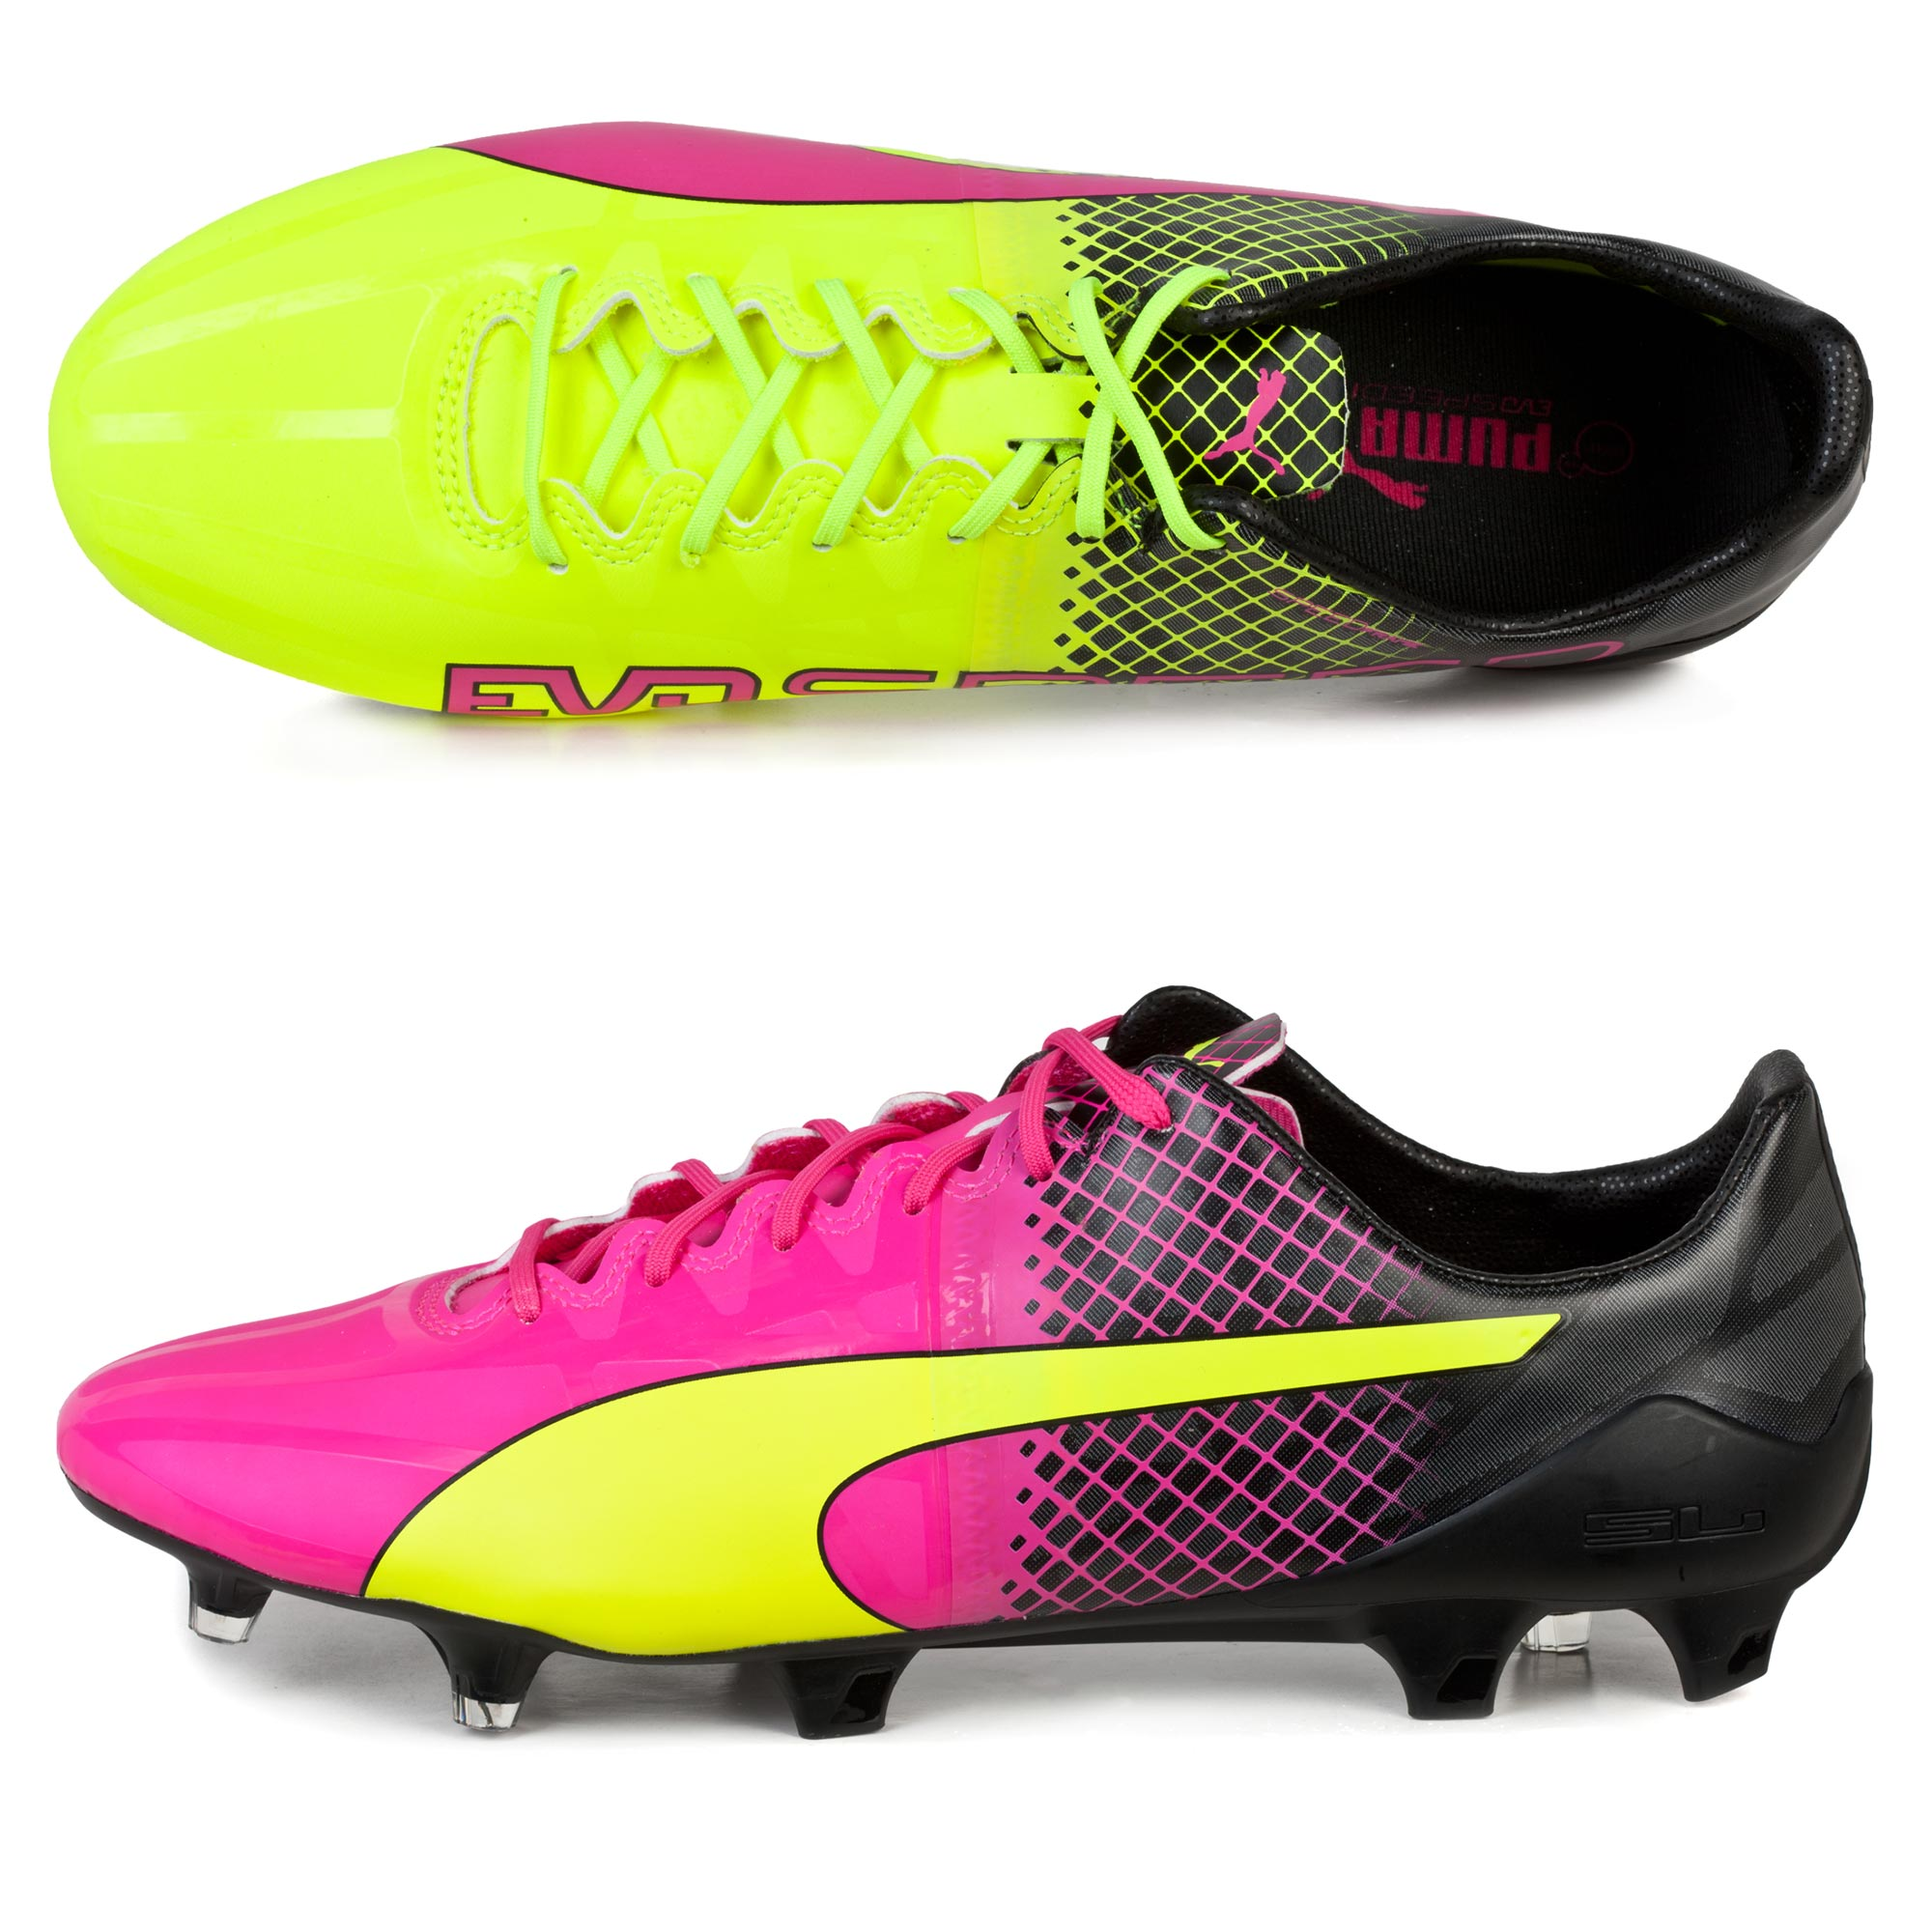 Puma evoSPEED 1.5 Tricks FG Pink